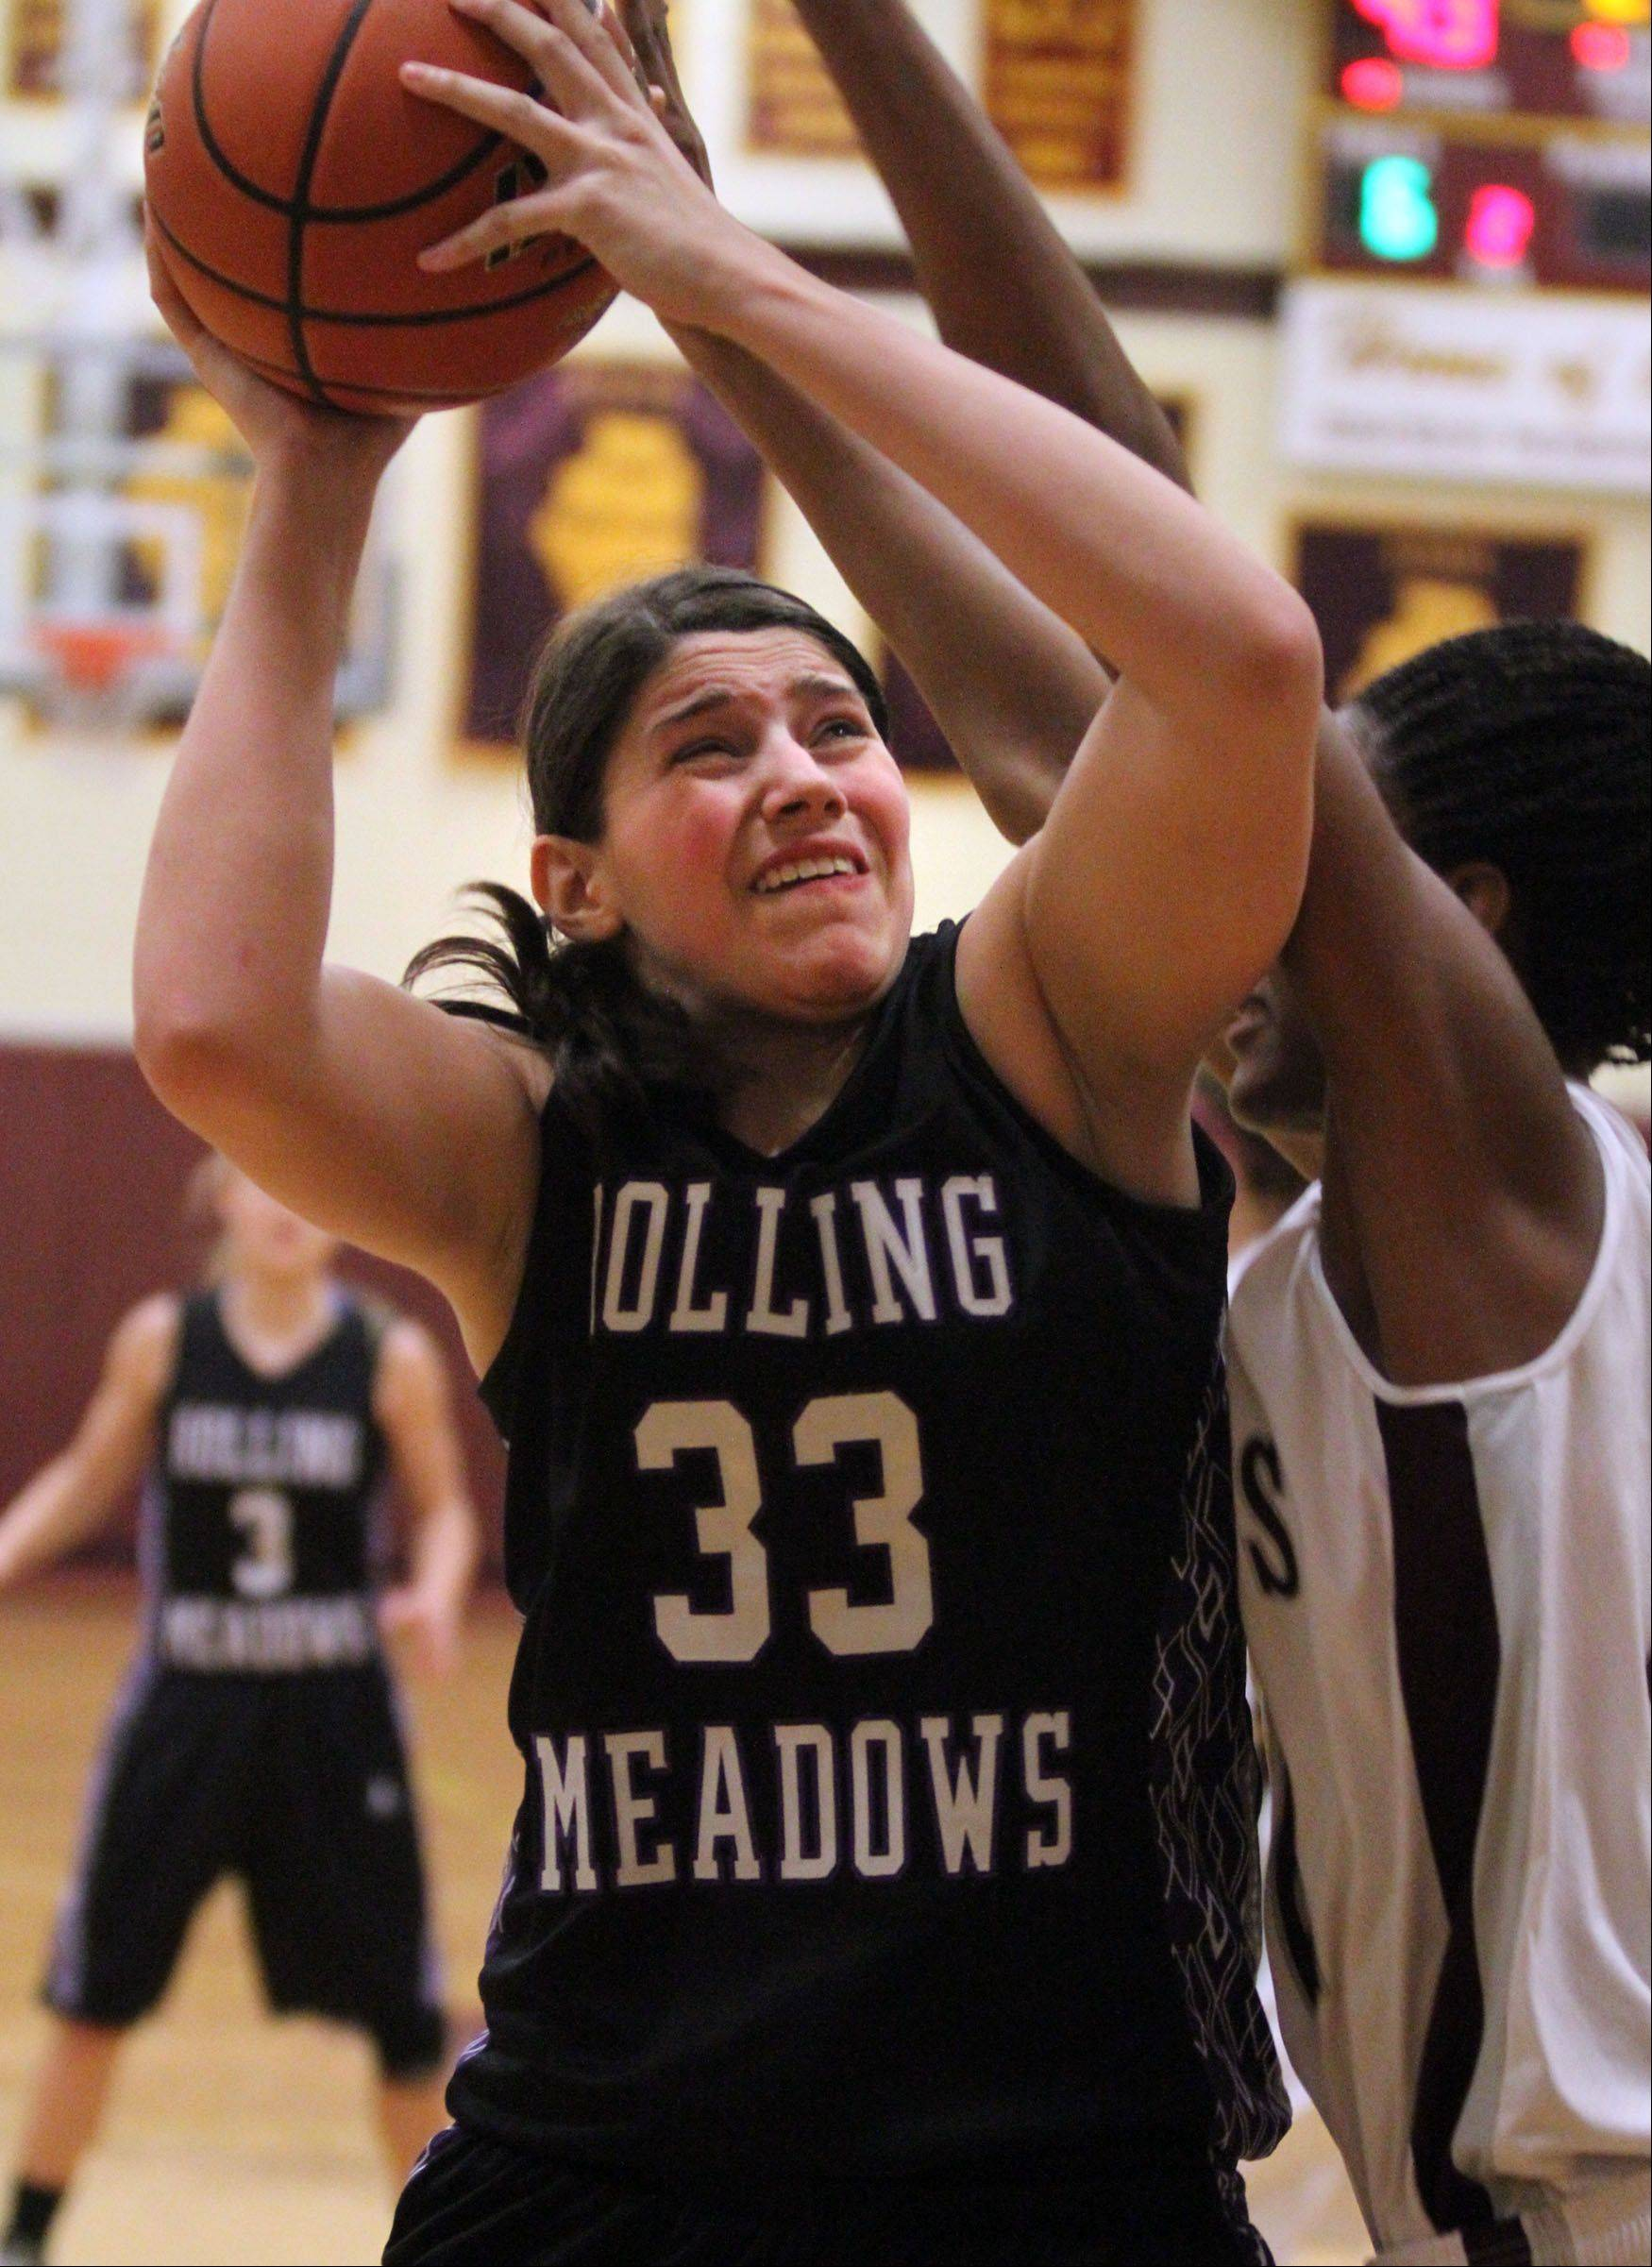 Rolling Meadows' Ashley Montanez puts up a shot against Montini in championship game of the Montini holiday tournament in Lombard on Saturday.